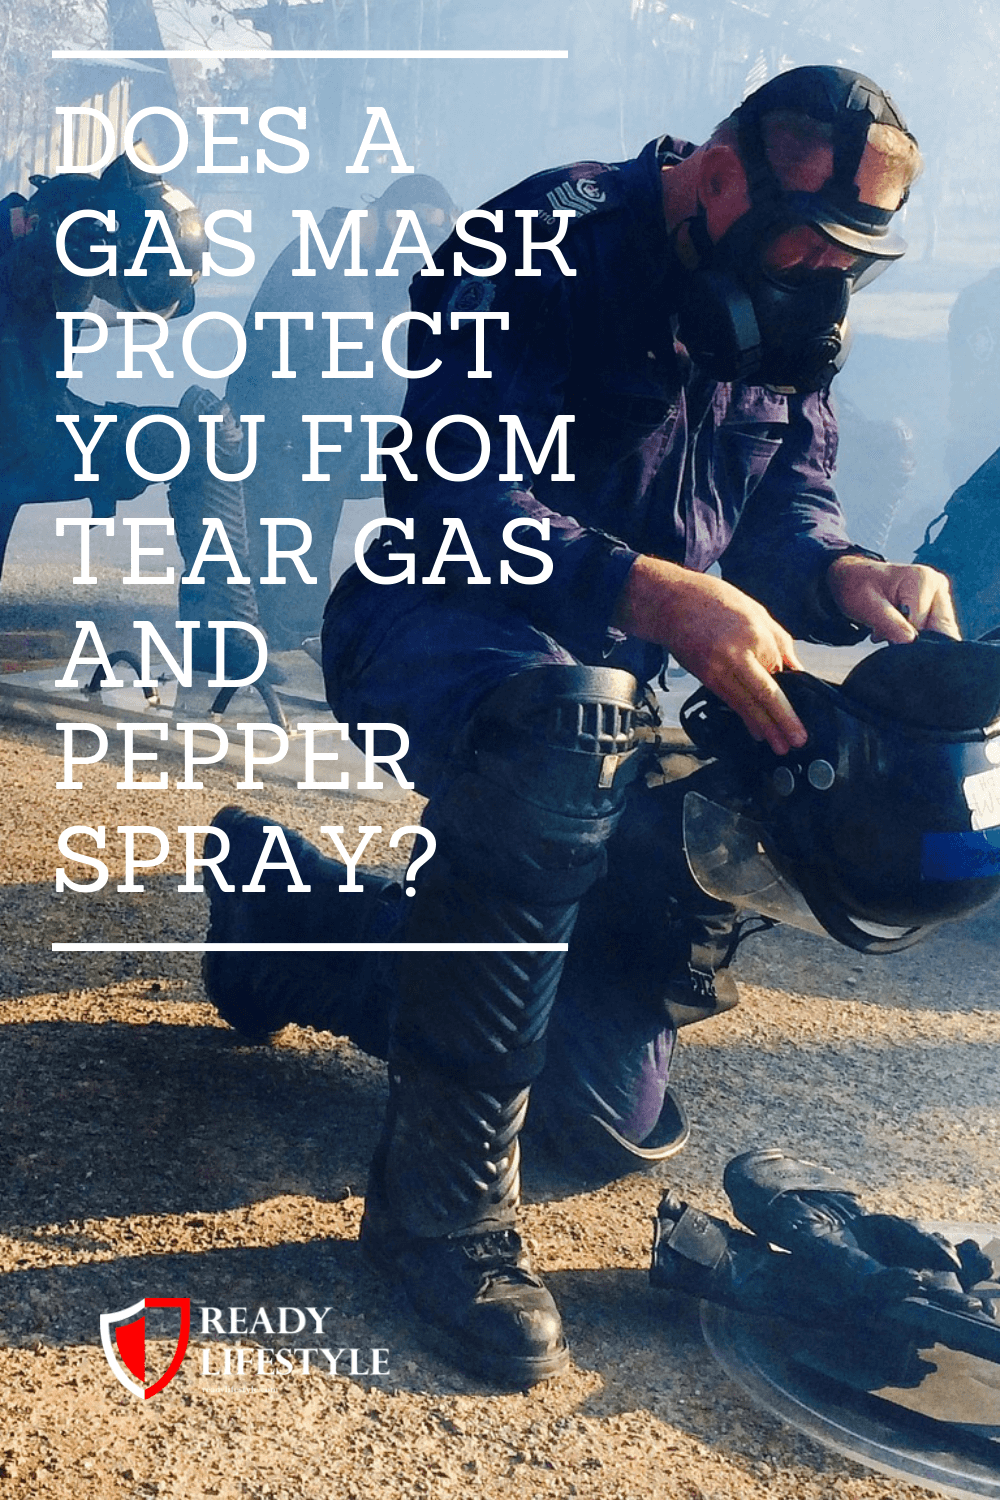 Does a Gas Mask Protect You From Tear Gas and Pepper Spray?